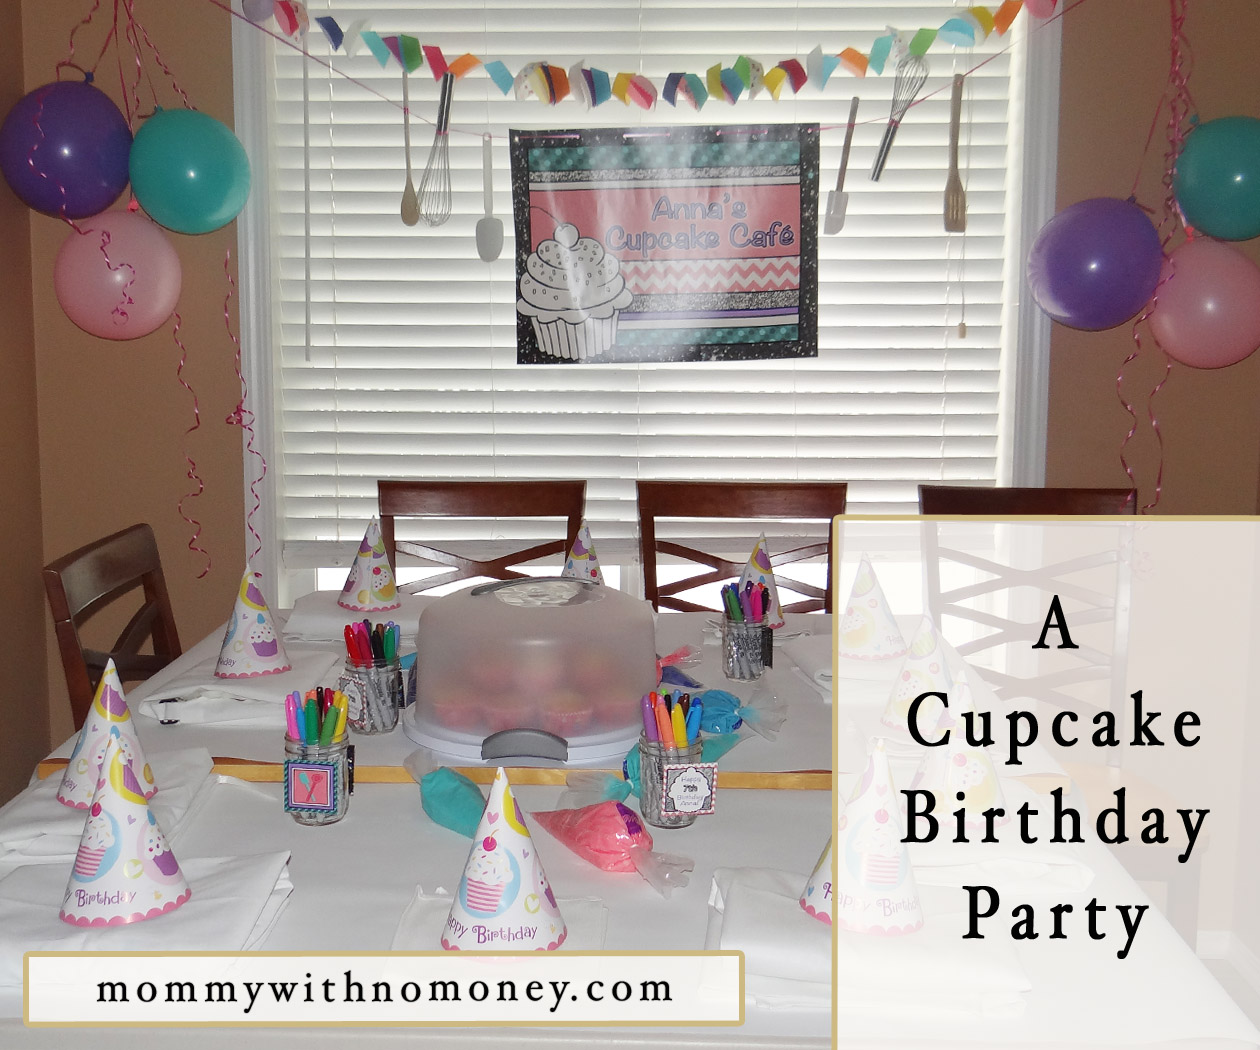 cupcake-birthday-party-pinterest-image